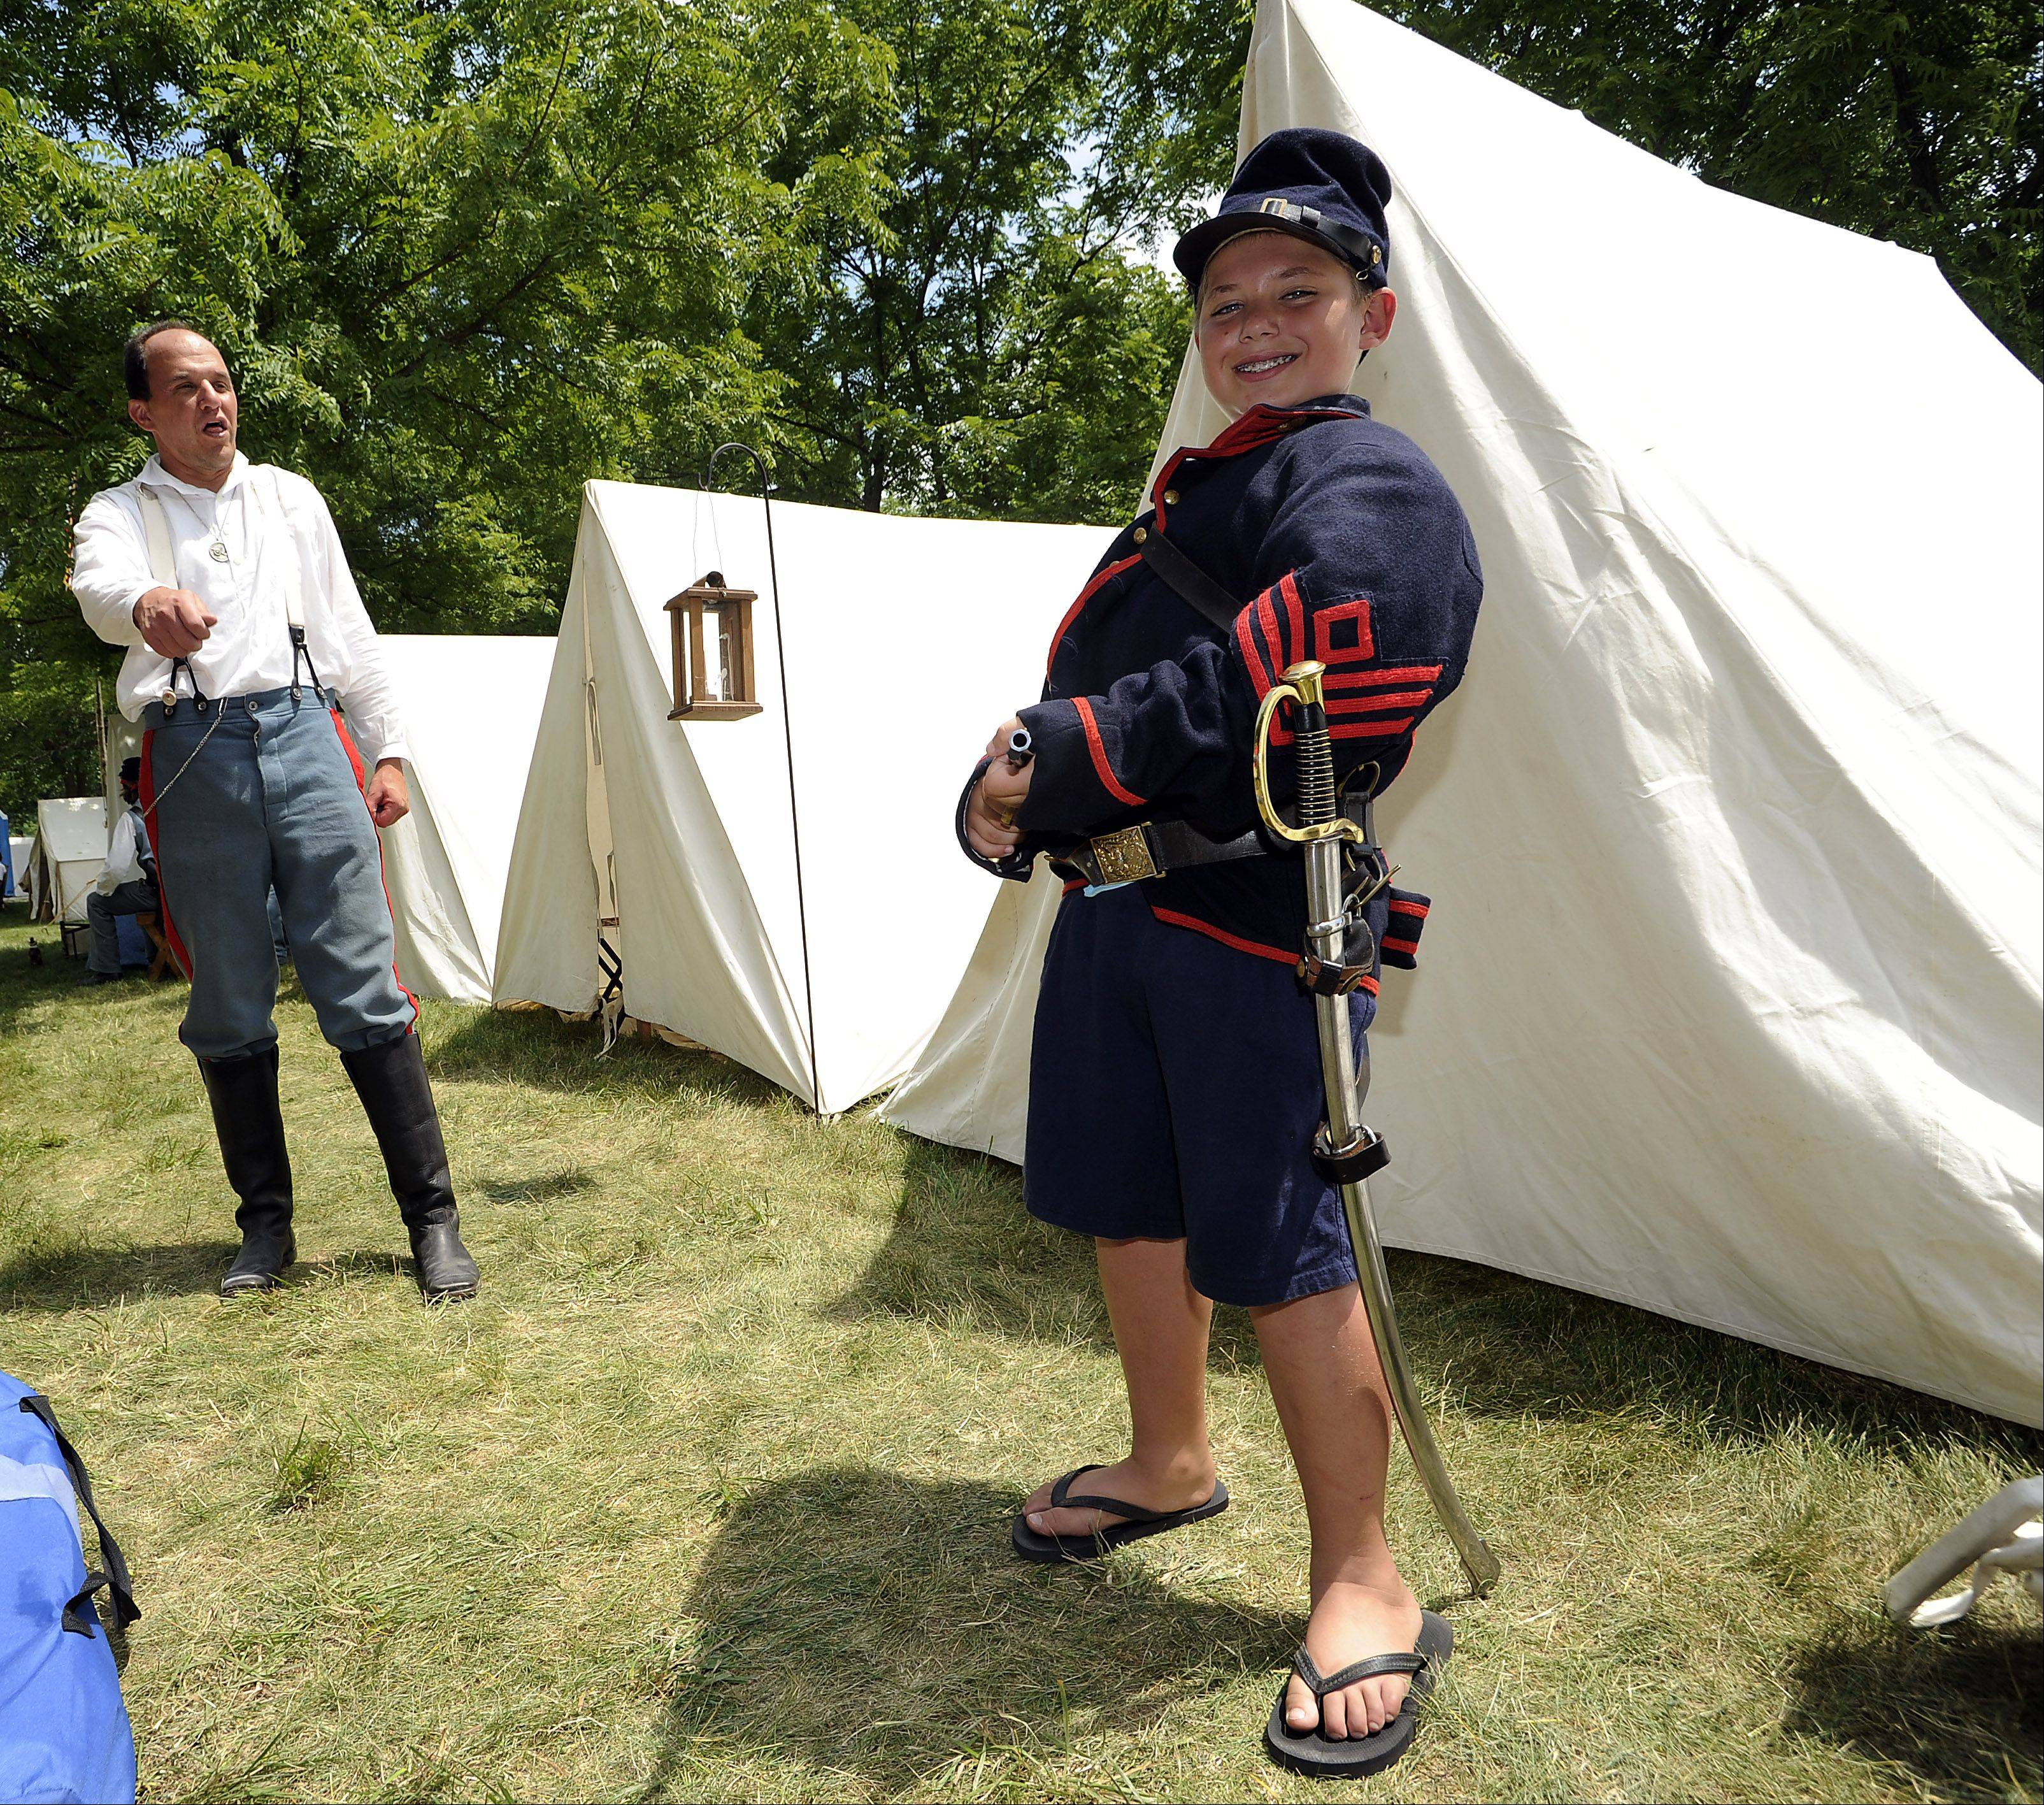 Elk Grove Village's Mike Gregory dresses up Eric Socha,11, of Itasca letting him experience first hand how hot and heavy the wool uniforms are on a hot summer day.